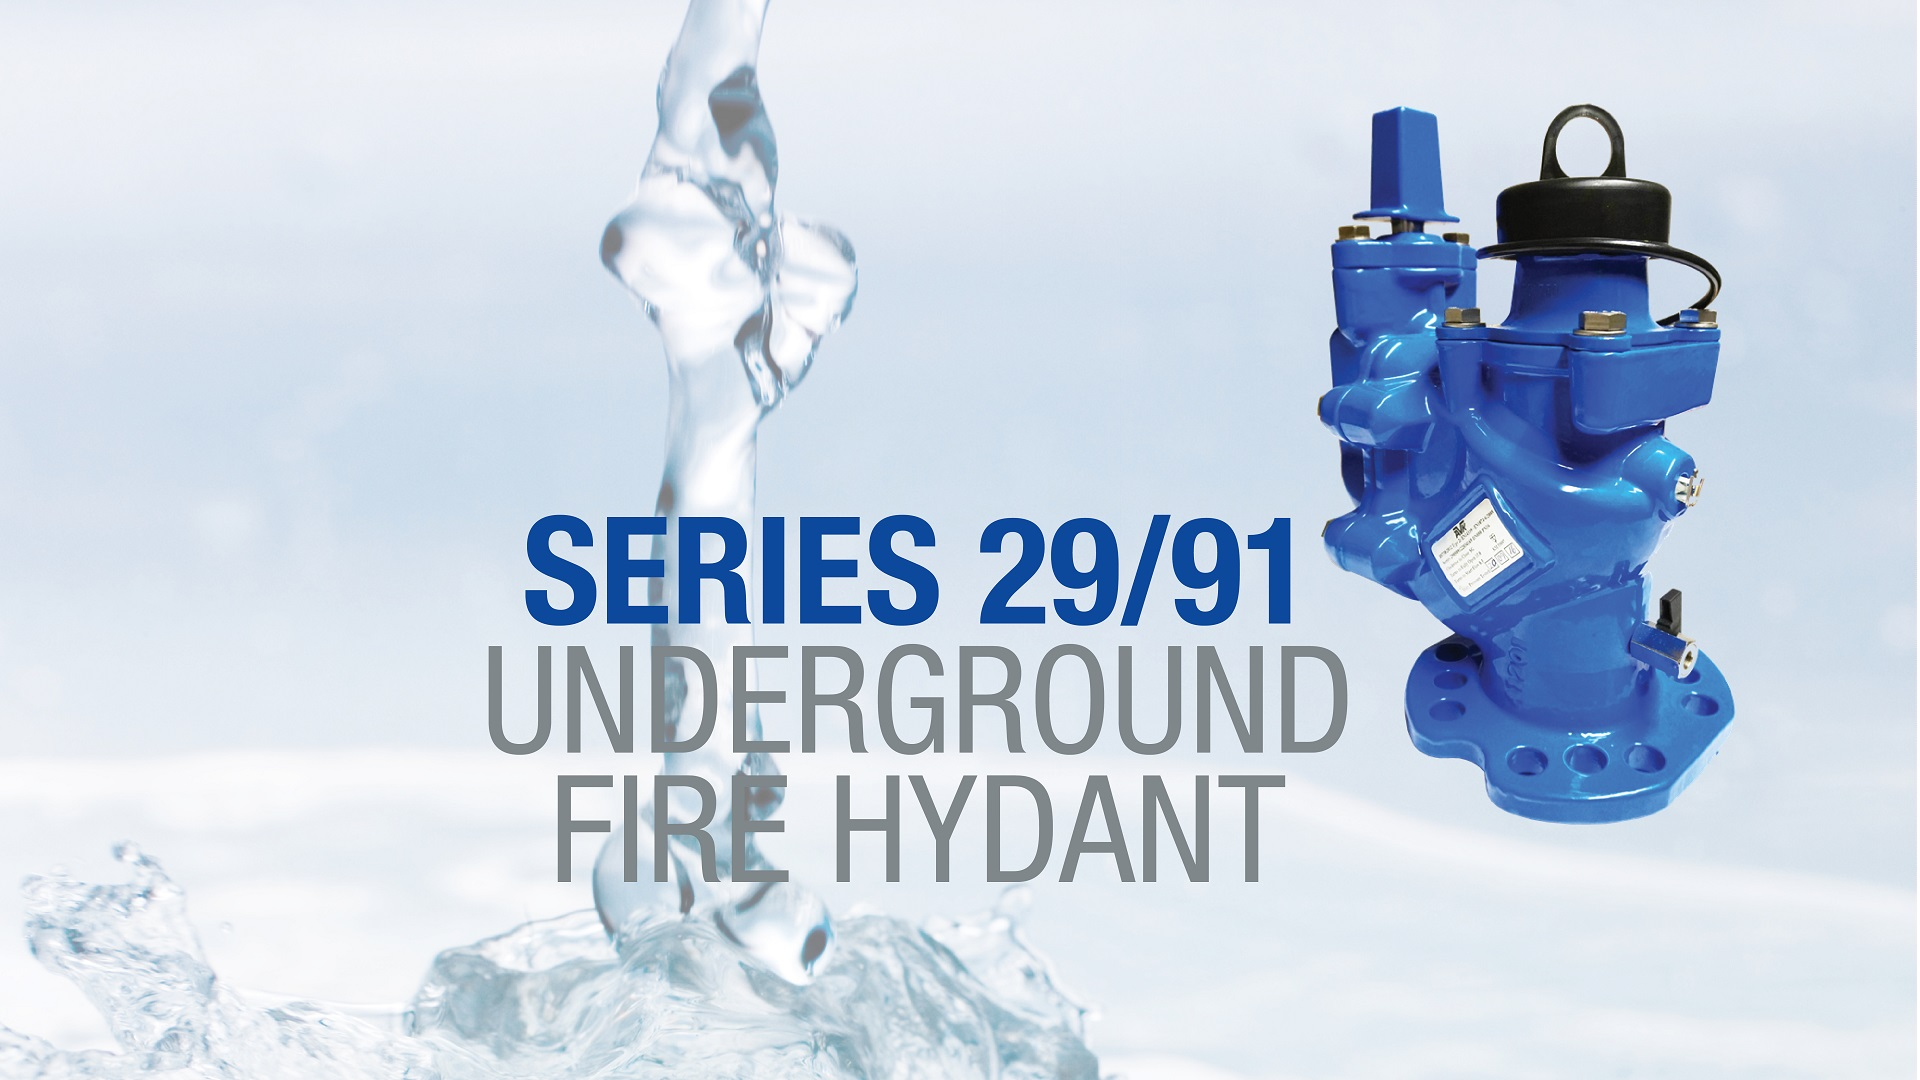 Series 29 91 Hydrant